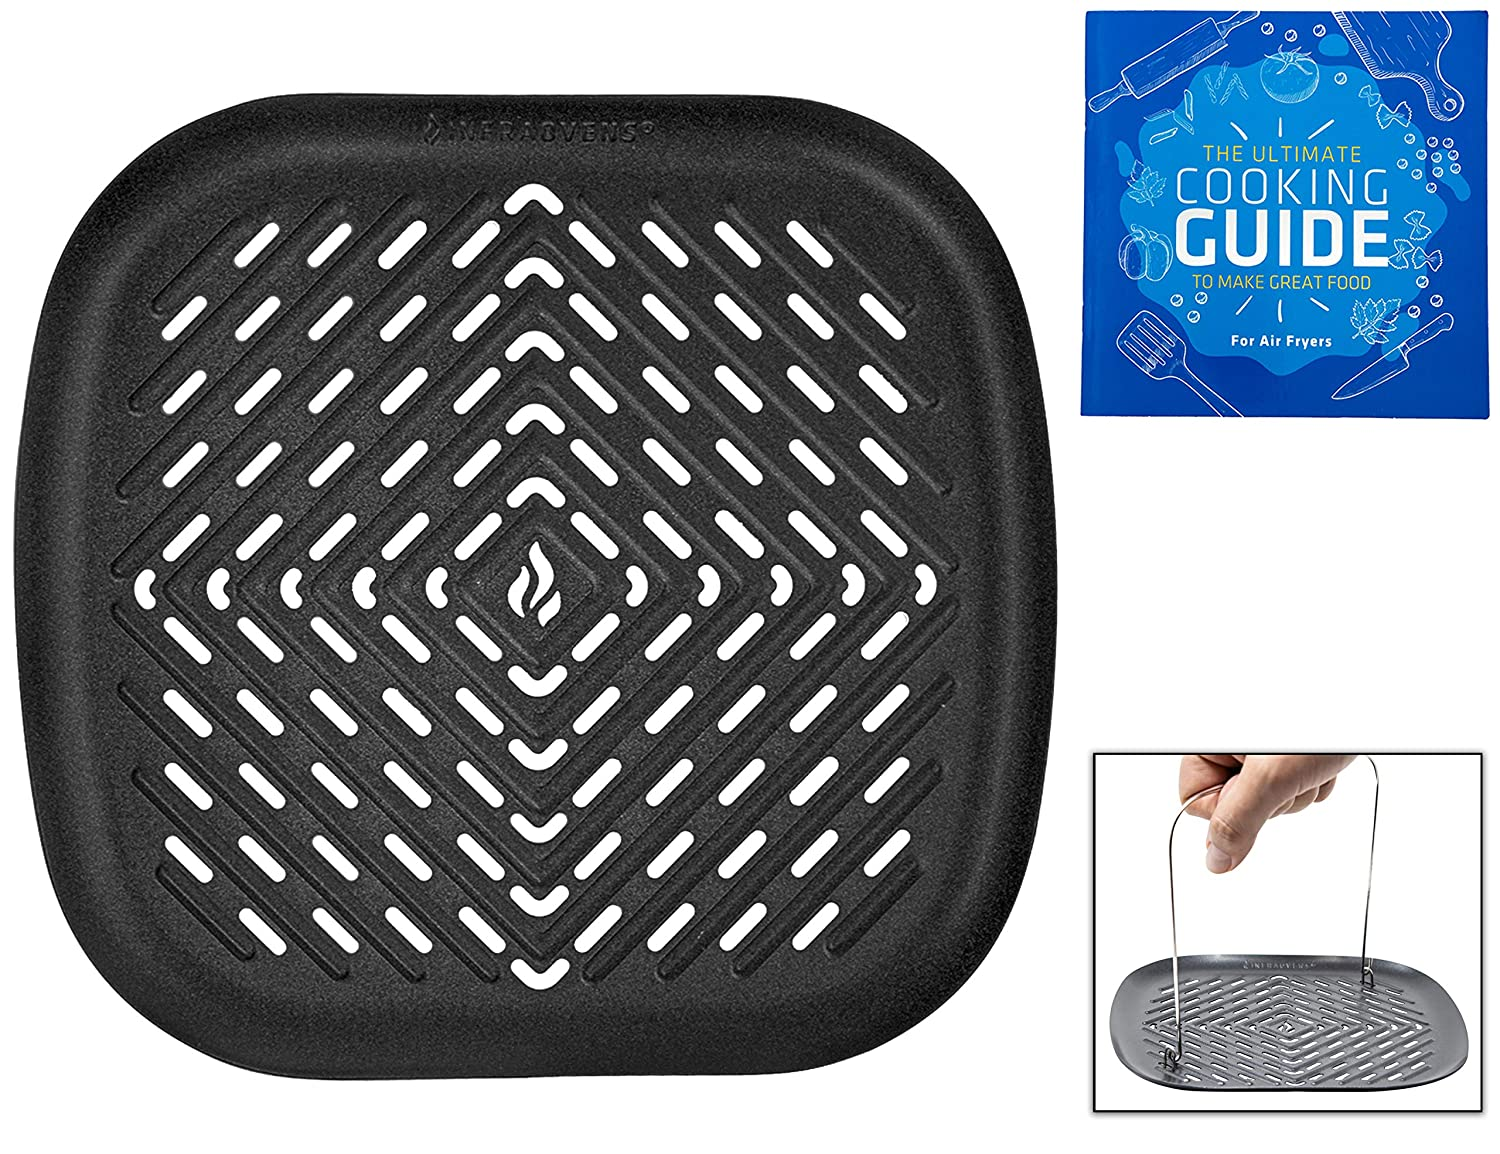 Air Fryer Grill Pan Set XXL Accessories Compatible with Philips Air Fryer, NuWave Brio, Chefman, Cozyna, Emerald, Power Air Fryer, Maxi Matic, Secura, Tidylife +More Fryer by Infraovens